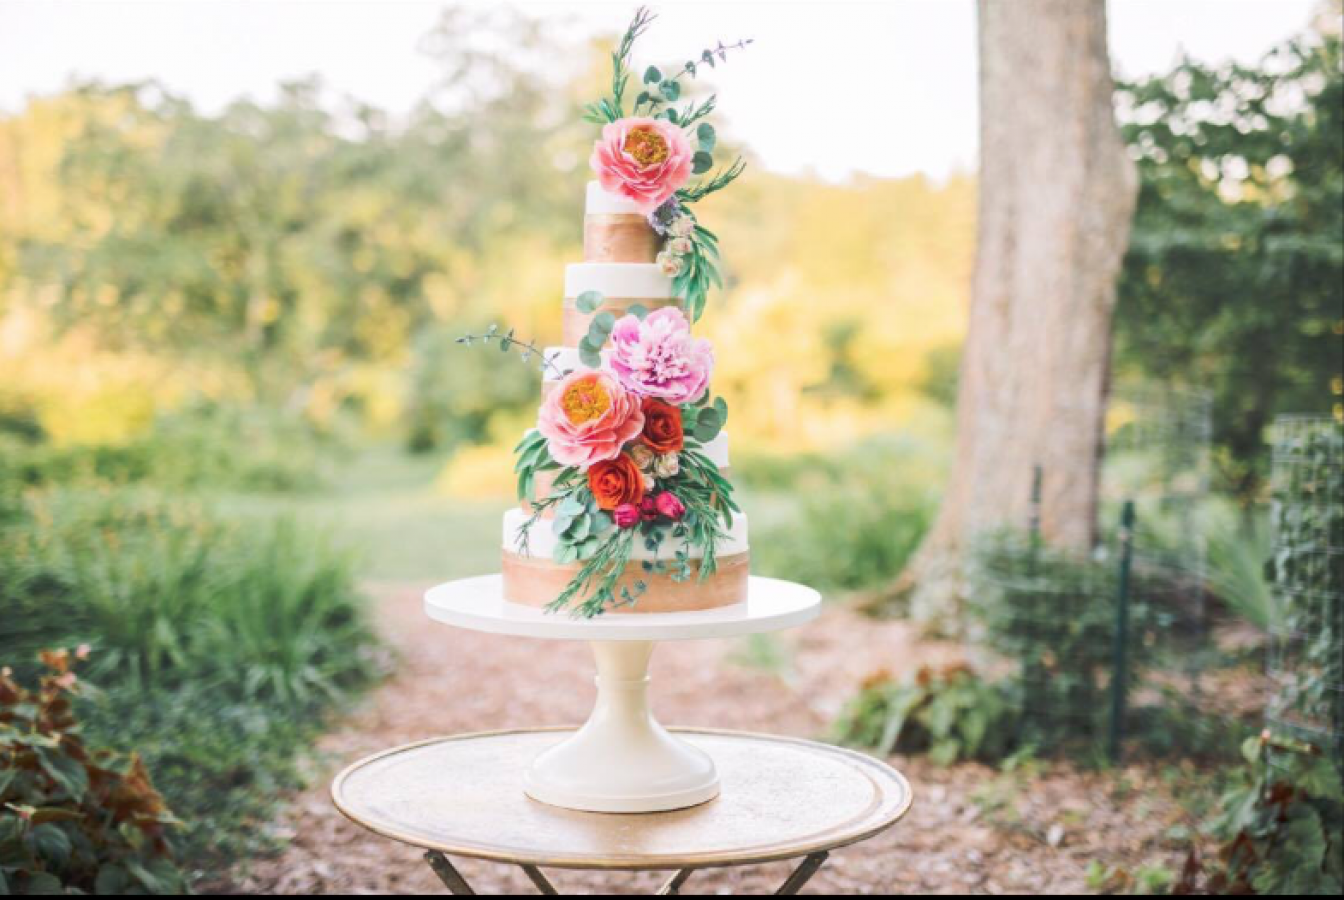 The Mischief Maker Cakes and Sugar Flowers | Kentucky